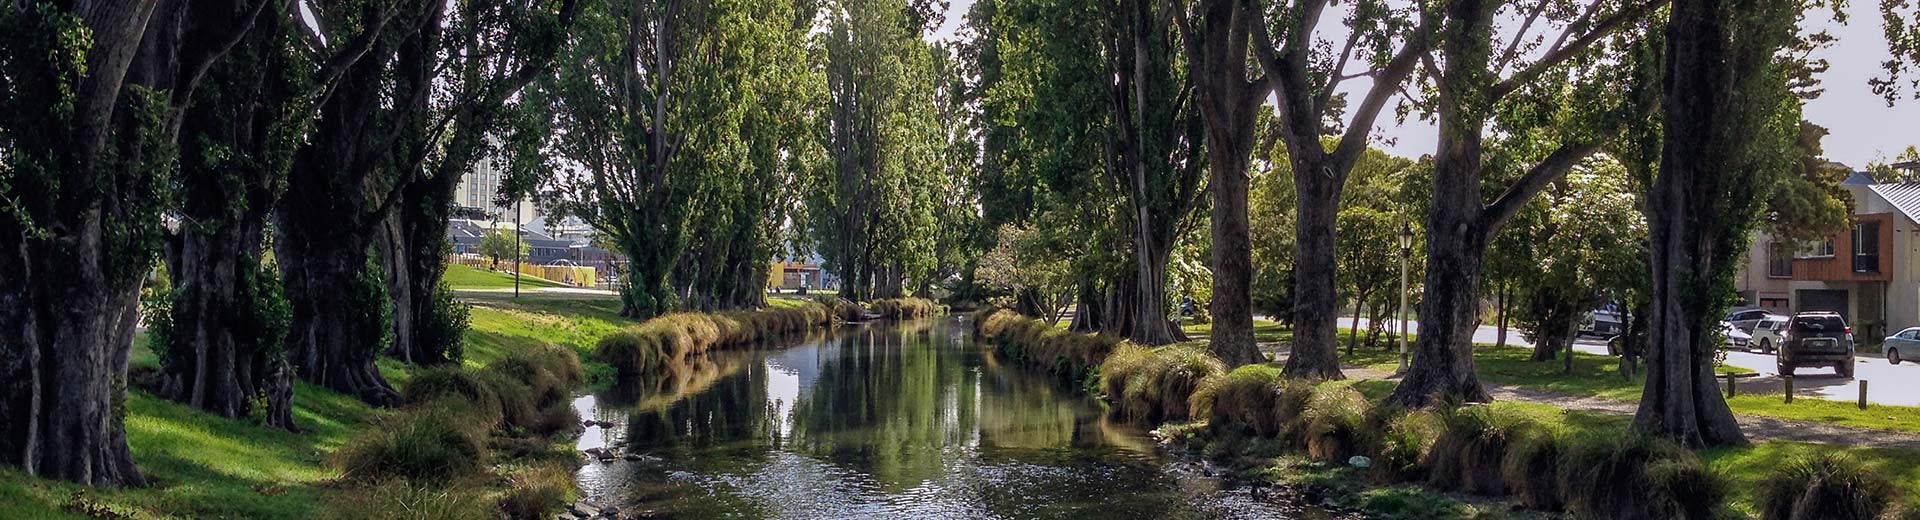 An idyllic canal surrounded by trees in Christchurch